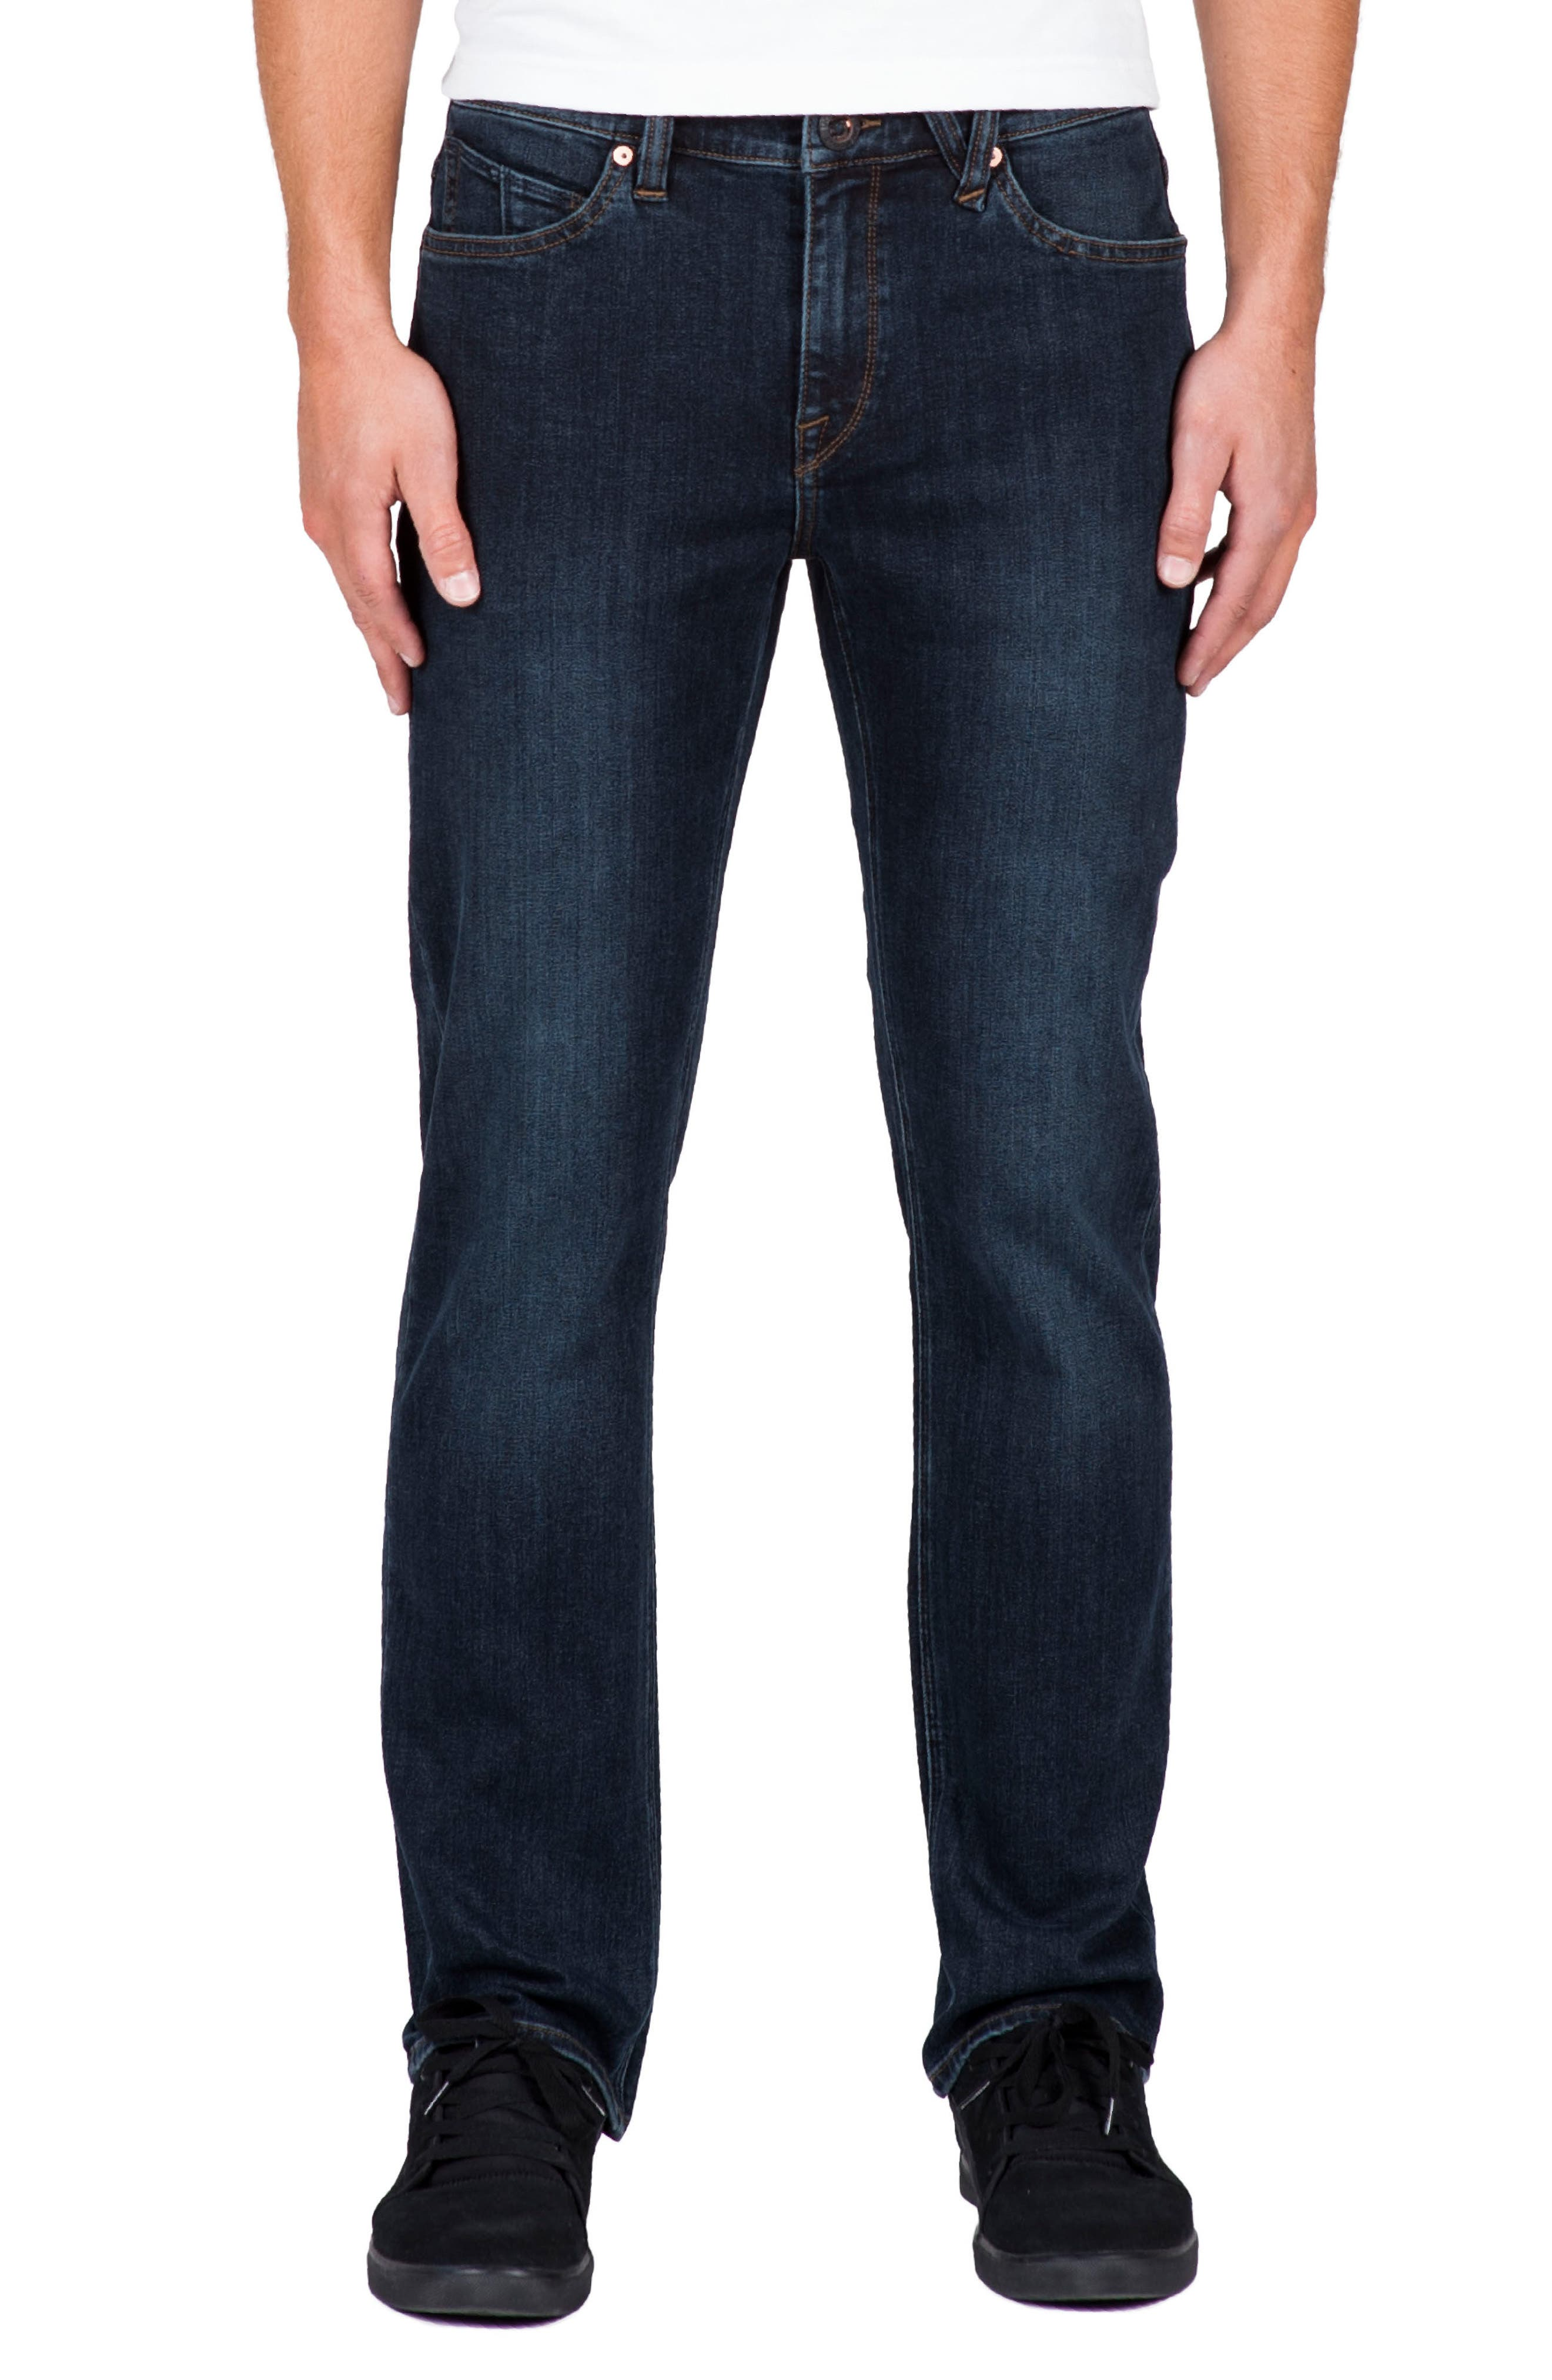 'Solver' Straight Leg Jeans,                             Main thumbnail 1, color,                             BLUE VNT